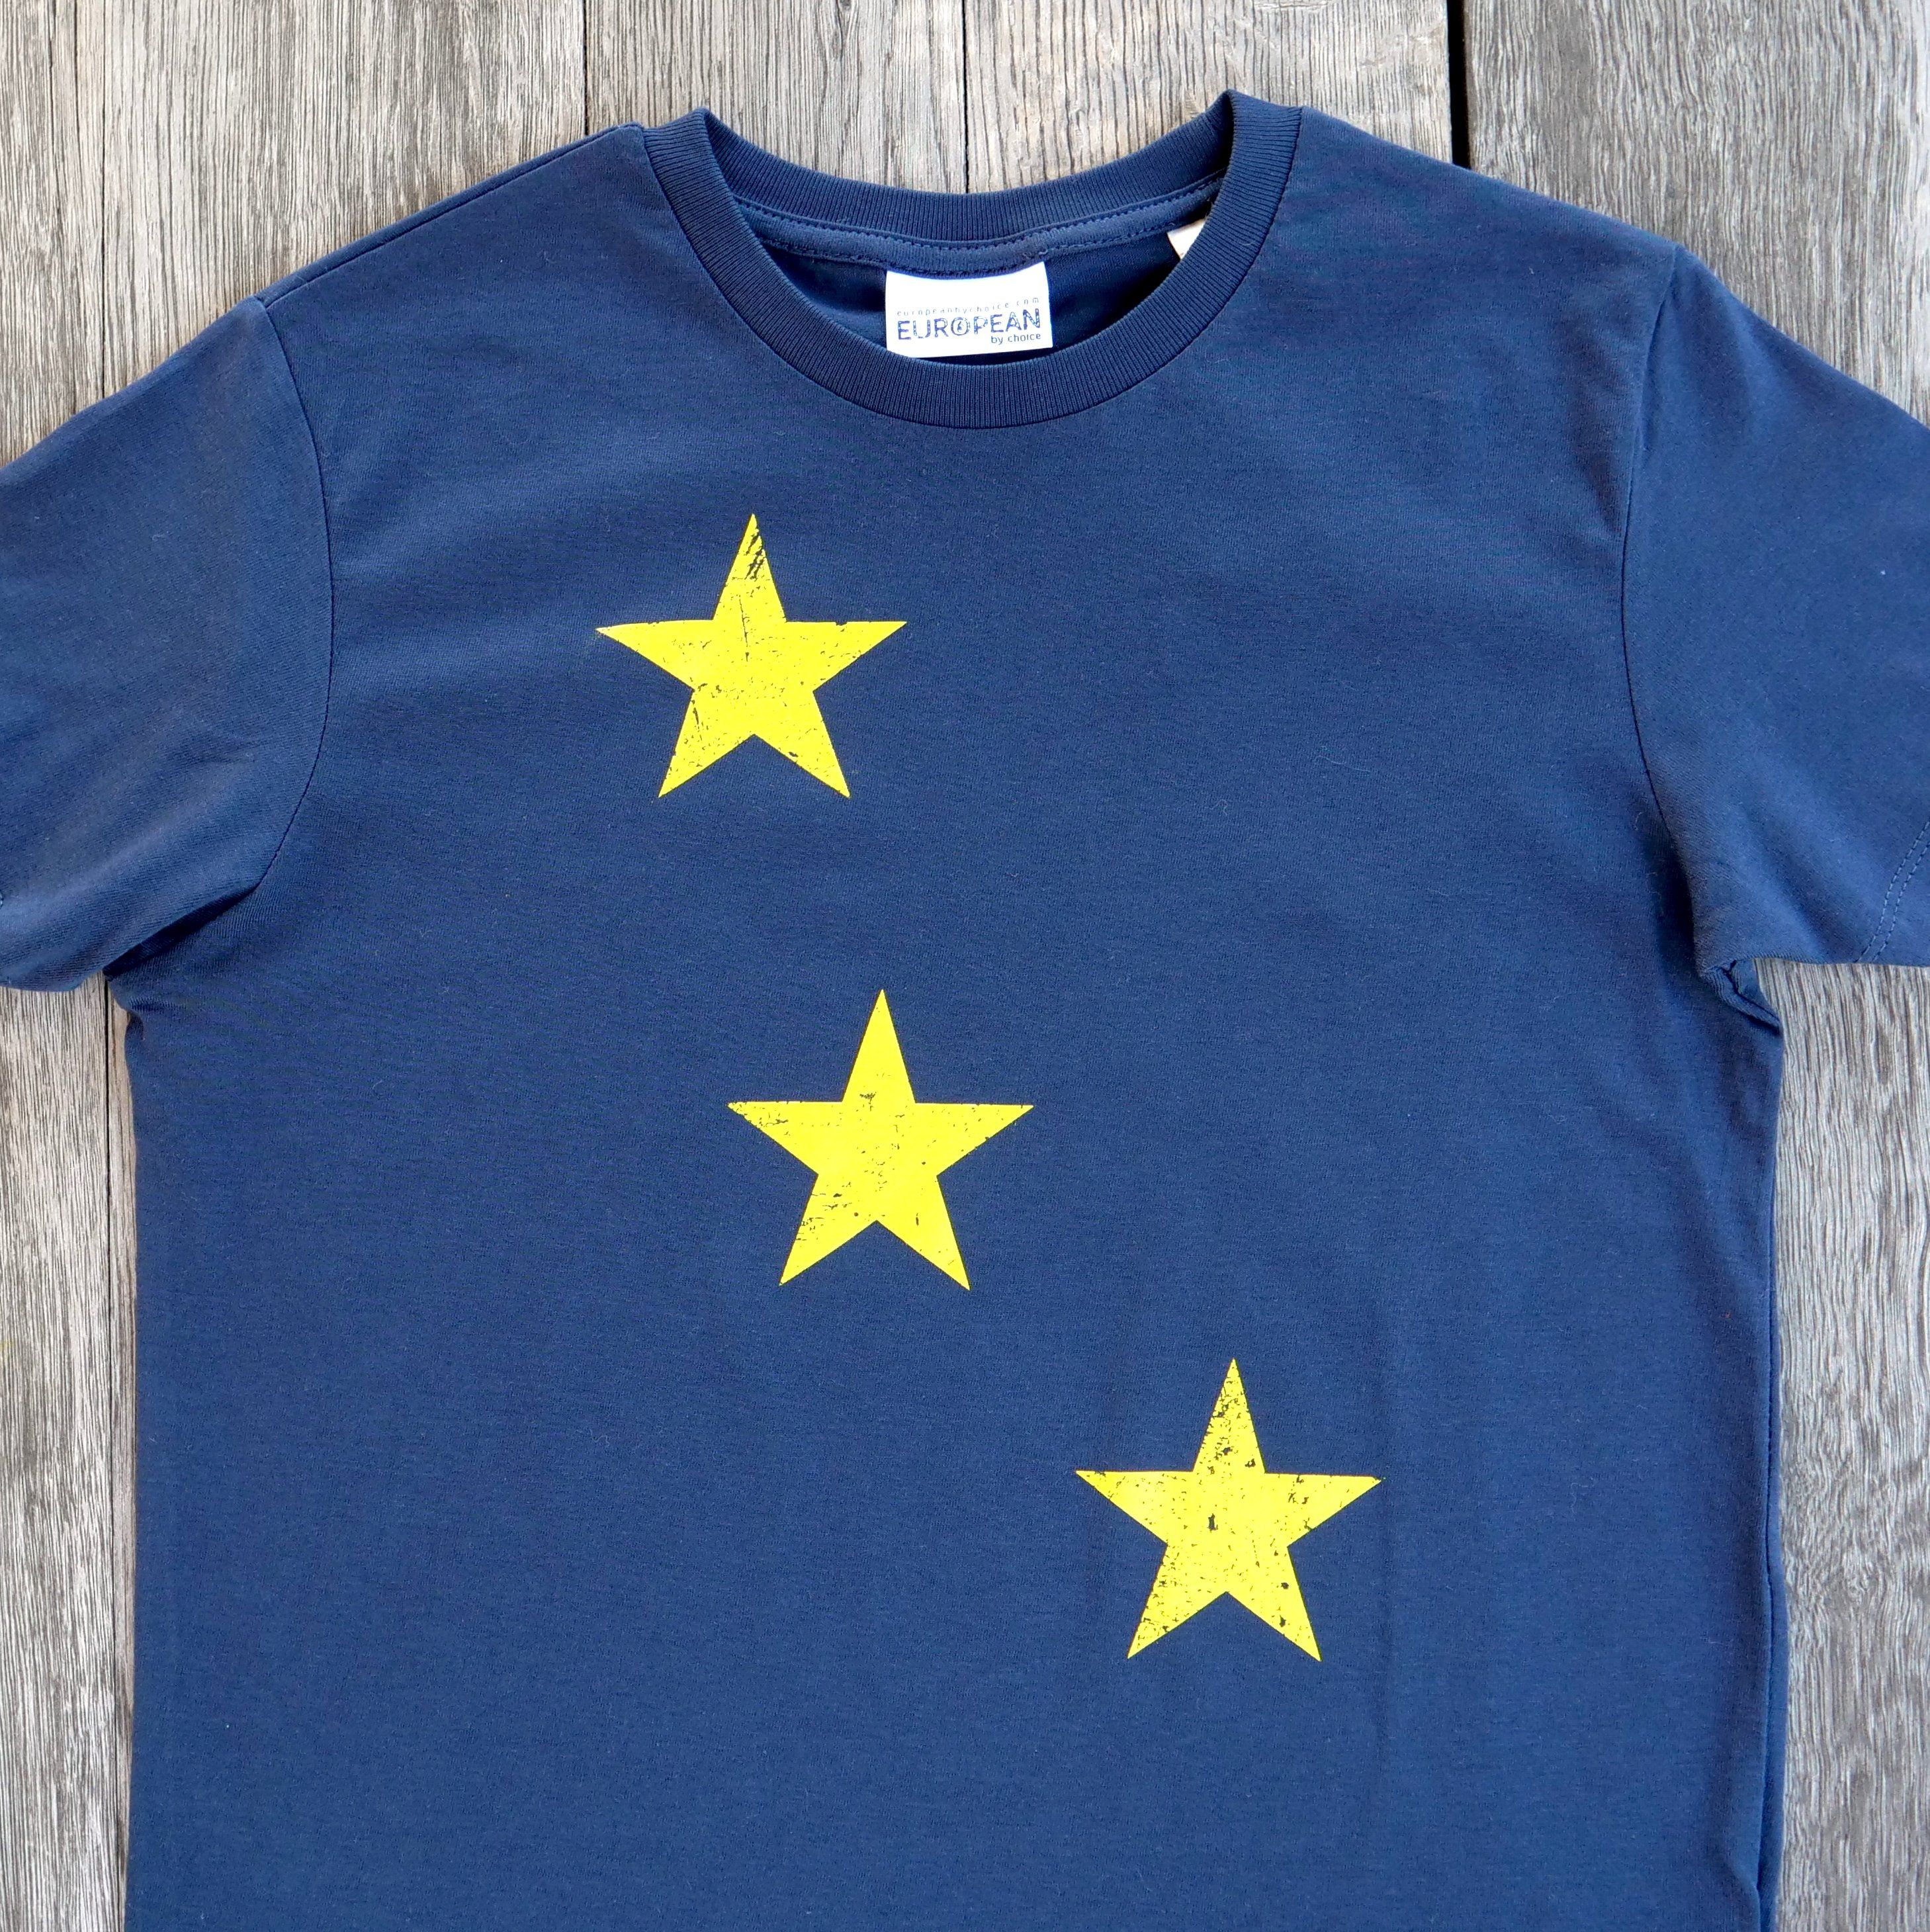 Stars T-shirt Kids - European By Choice